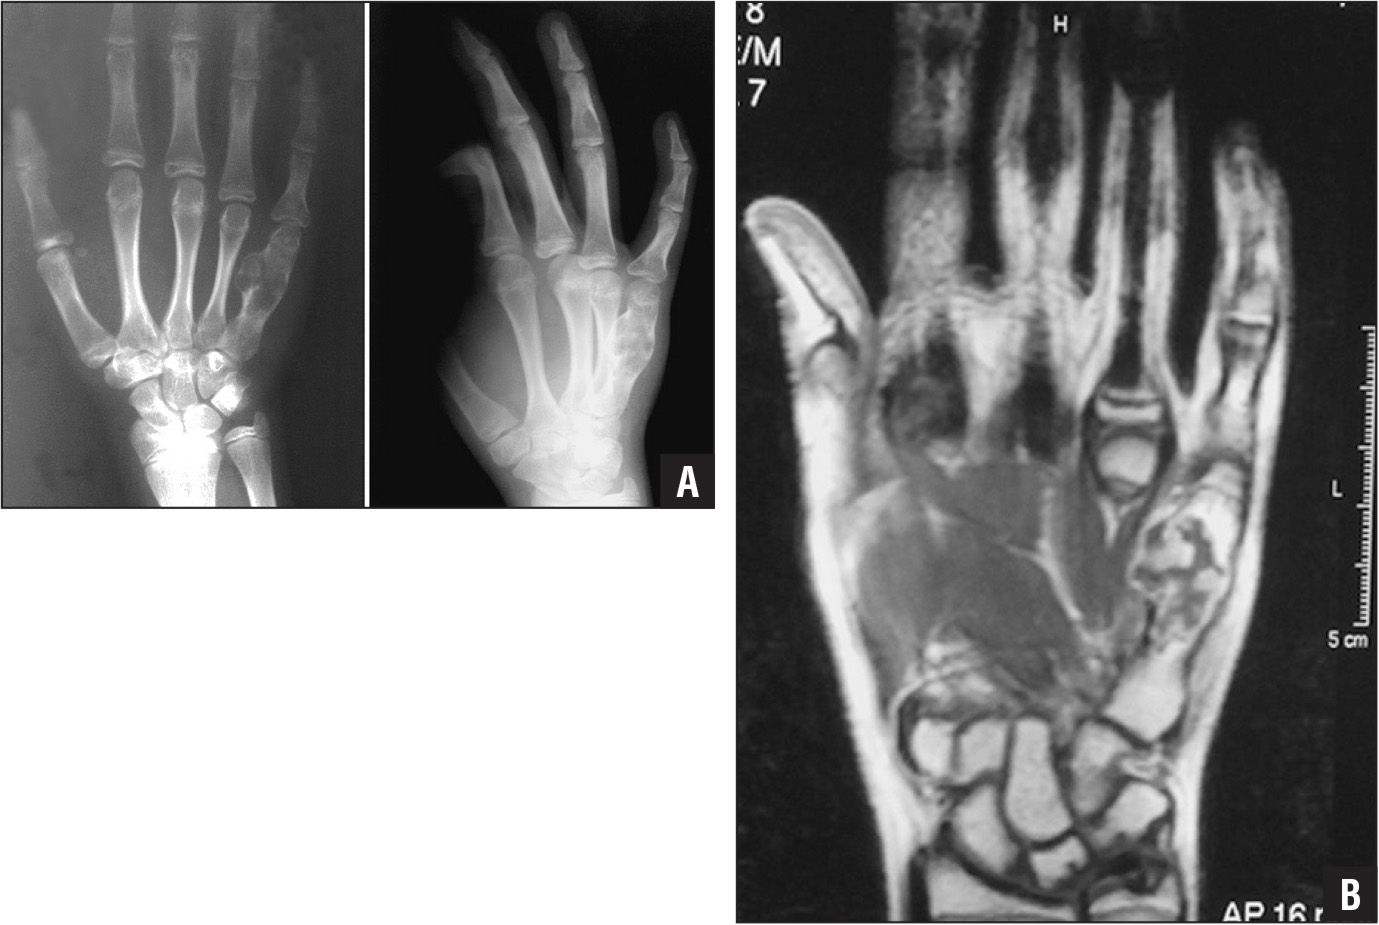 Posteroanterior (left) and oblique (right) radiographs showing an expansive radiolucent mass in the fifth metacarpal, with cortical thinning and pathologic fracture and a radiolucent area in the middle phalanx of the fourth digit, 3 years after the second curettage and autogenous iliac bone grafting (A). A T1-weighted coronal magnetic resonance image showing a 23×18×16-mm expansive cartilaginous matrix of lobules with septae that have hyperintense signal intensity in the fifth metacarpal with pathologic fracture (B).